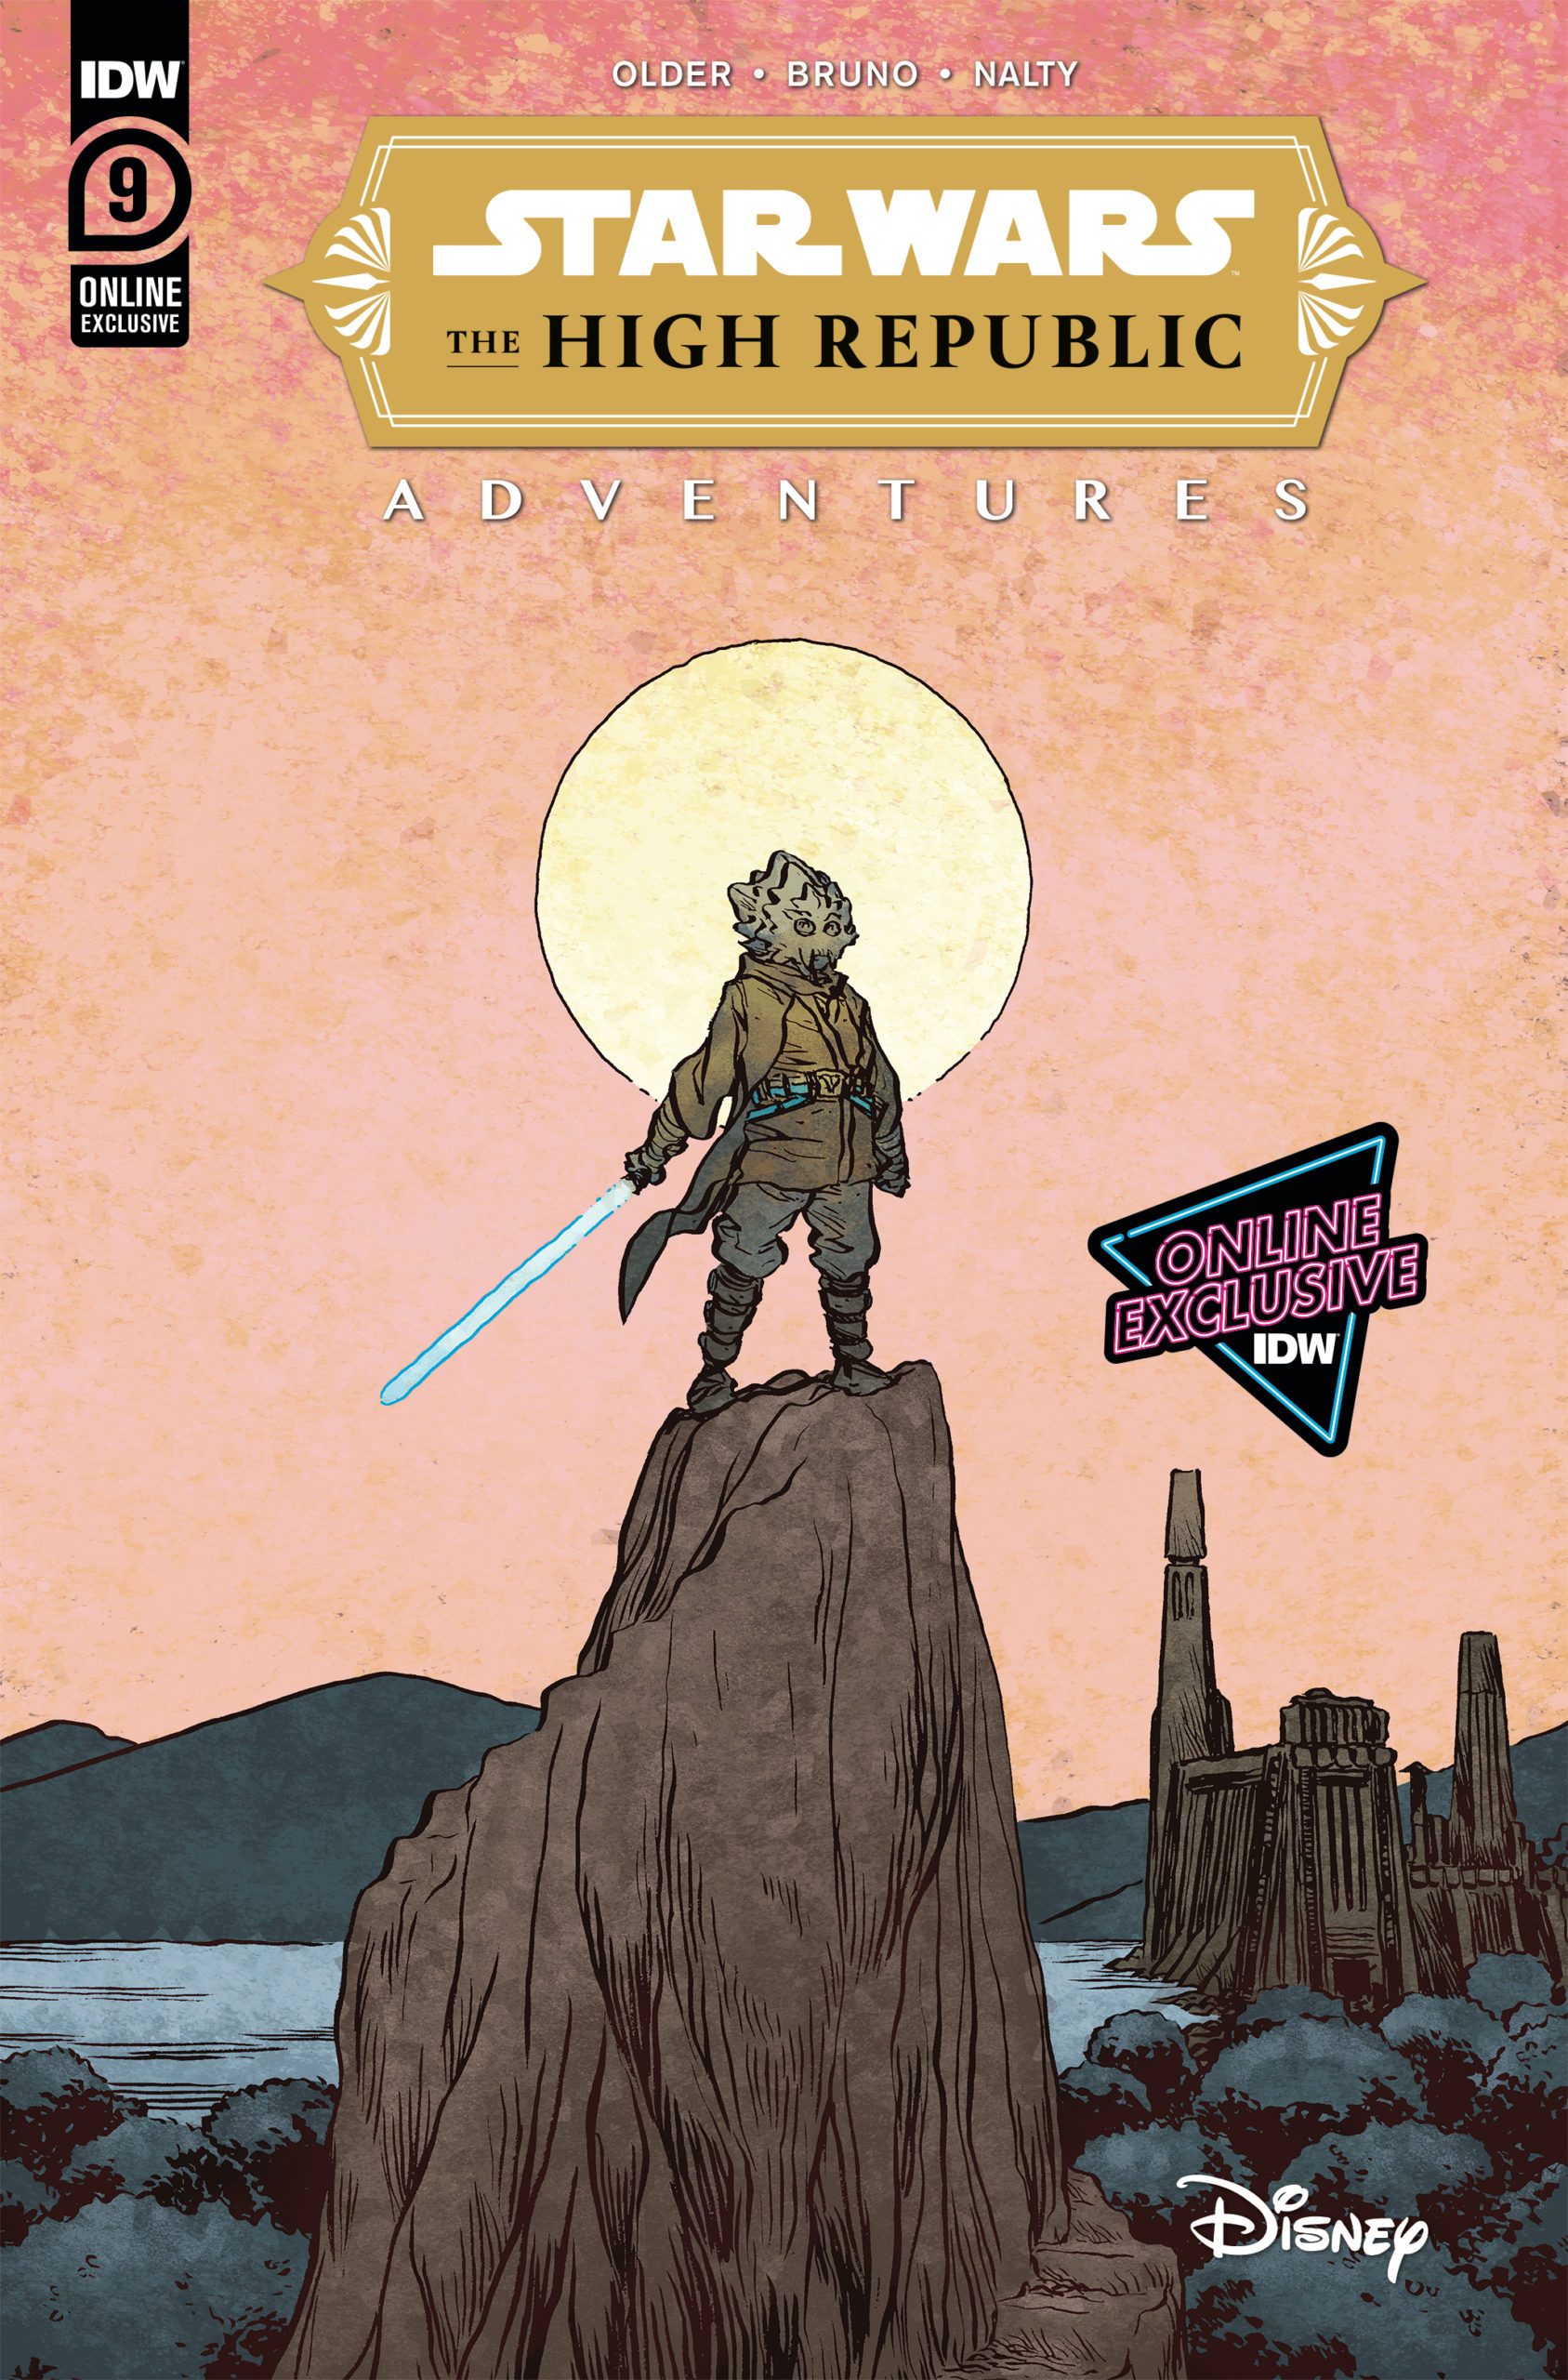 The High Republic Adventures #9 (Jesse Lonergan NYCC Variant Cover) (07.10.2021)